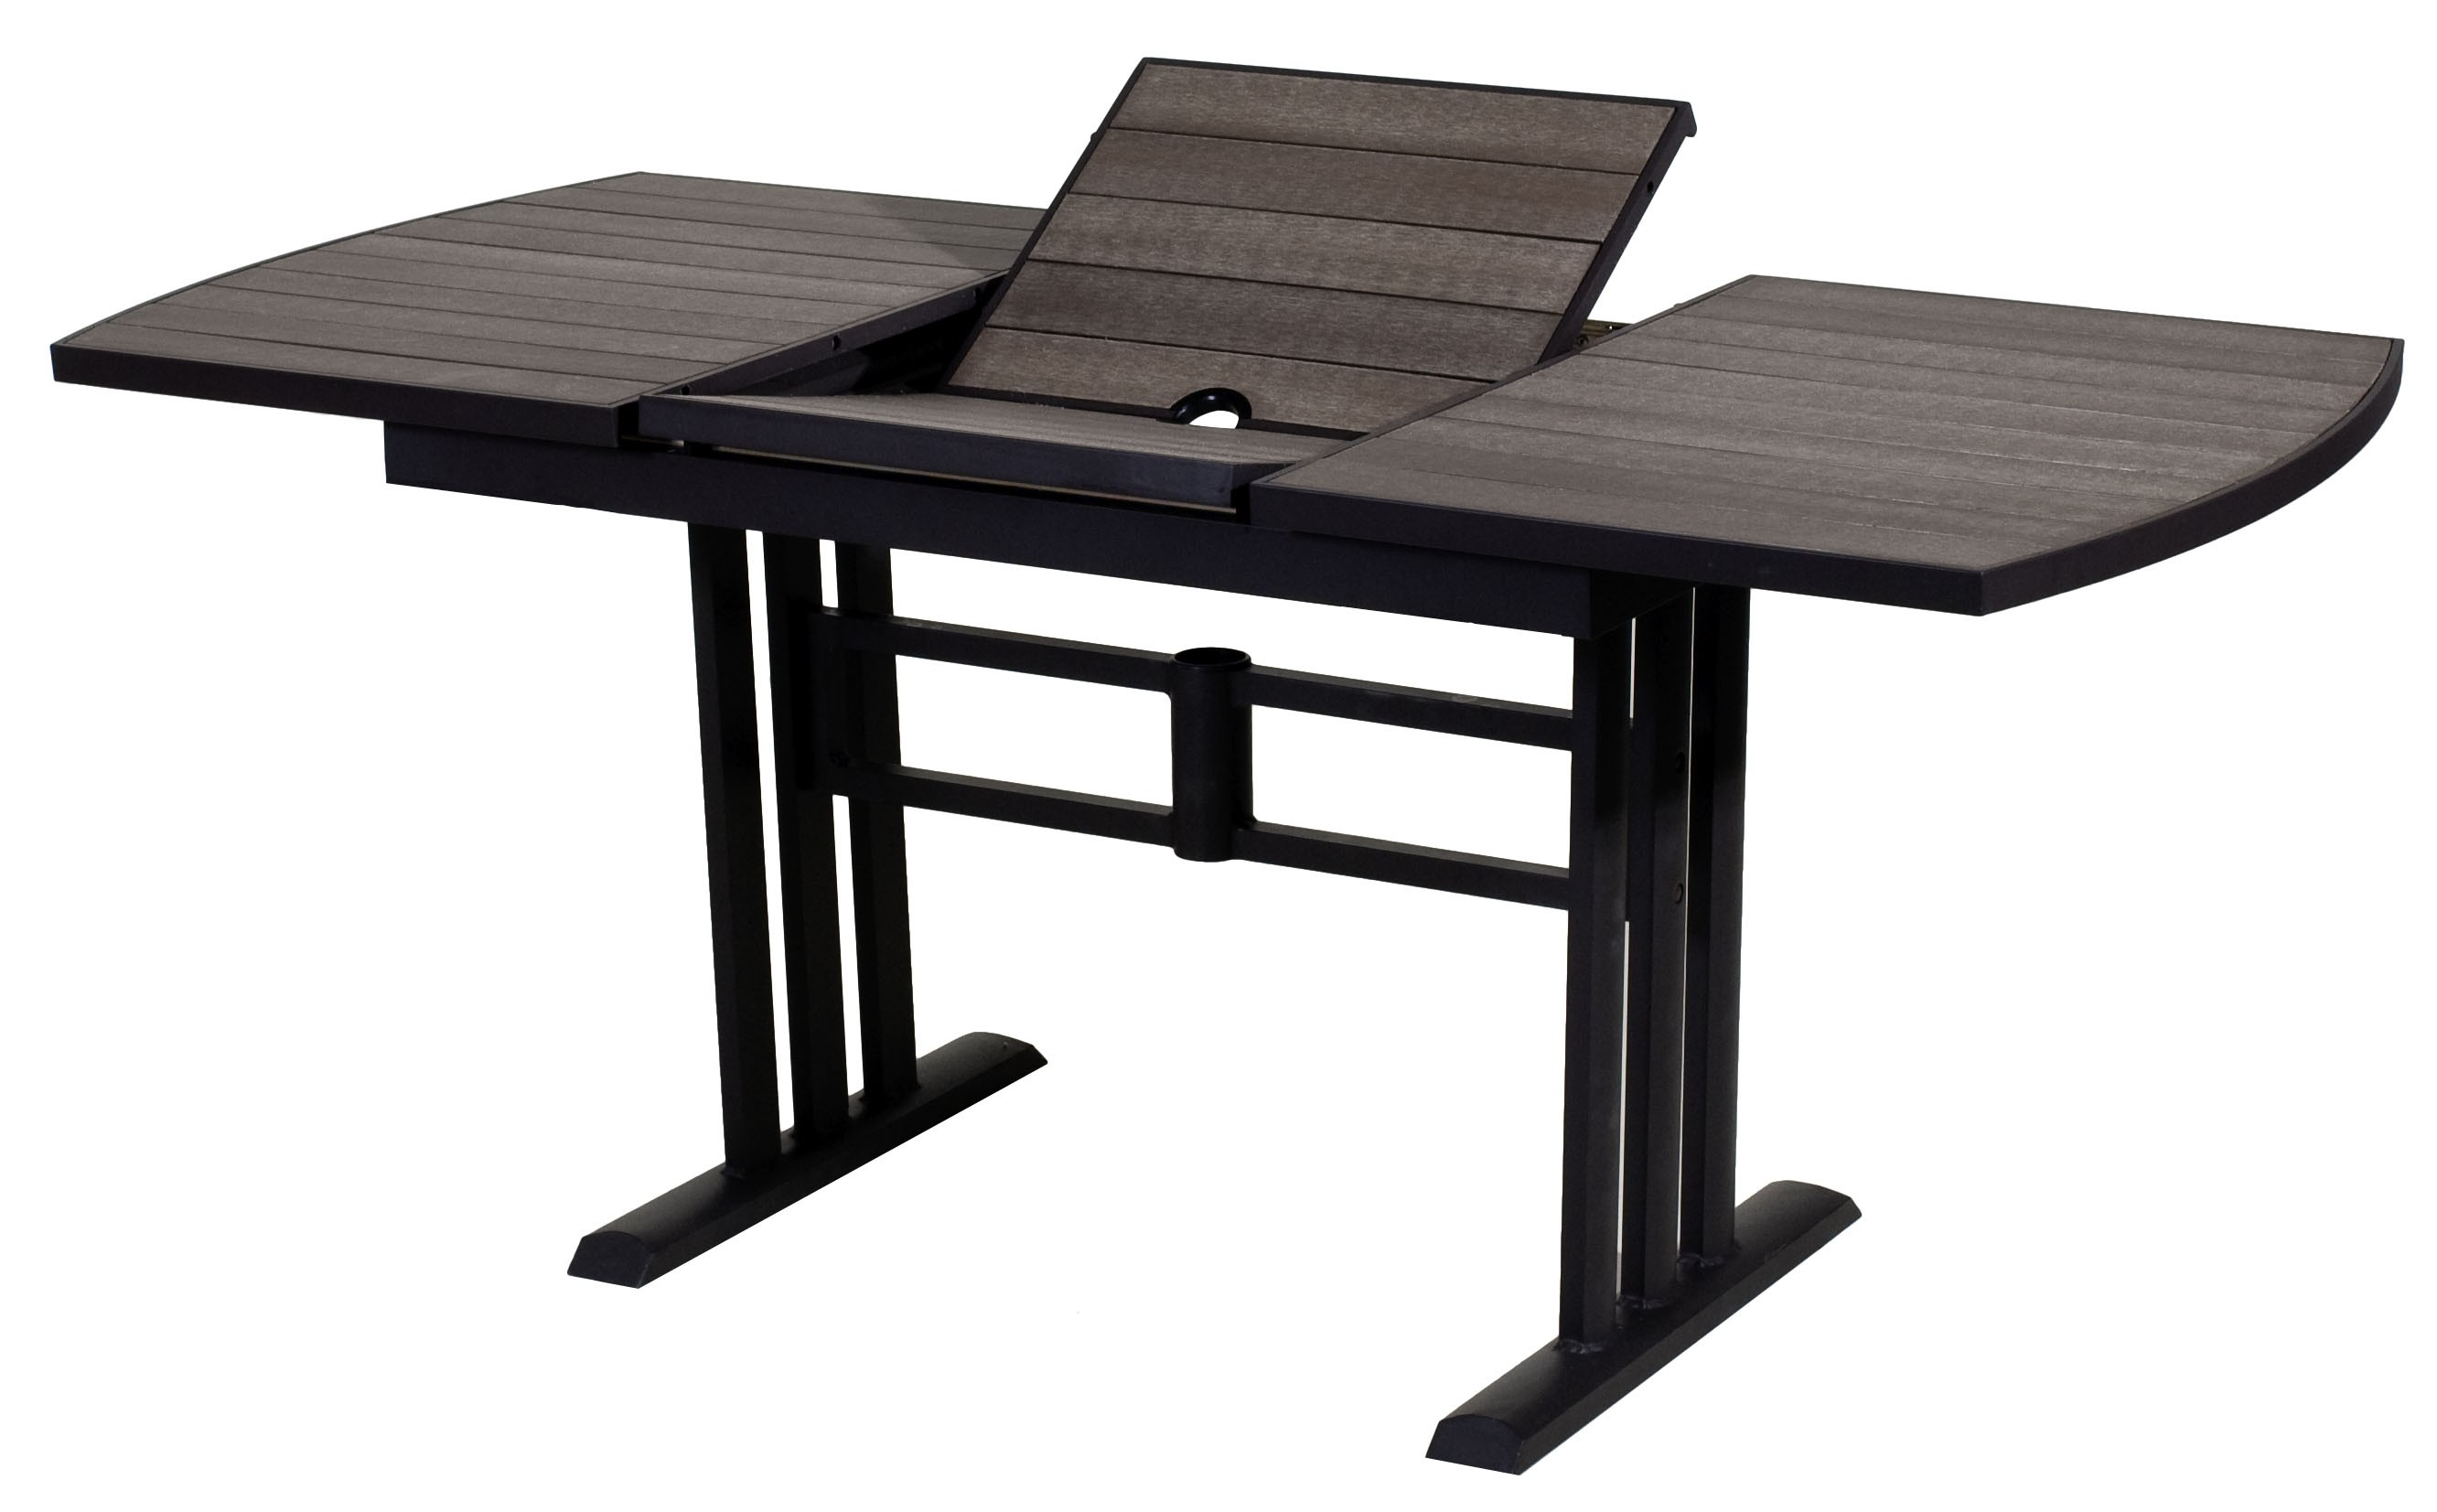 Salon De Jardin Composite Extensible Table De Jardin Twig Rectangulaire En Hpl